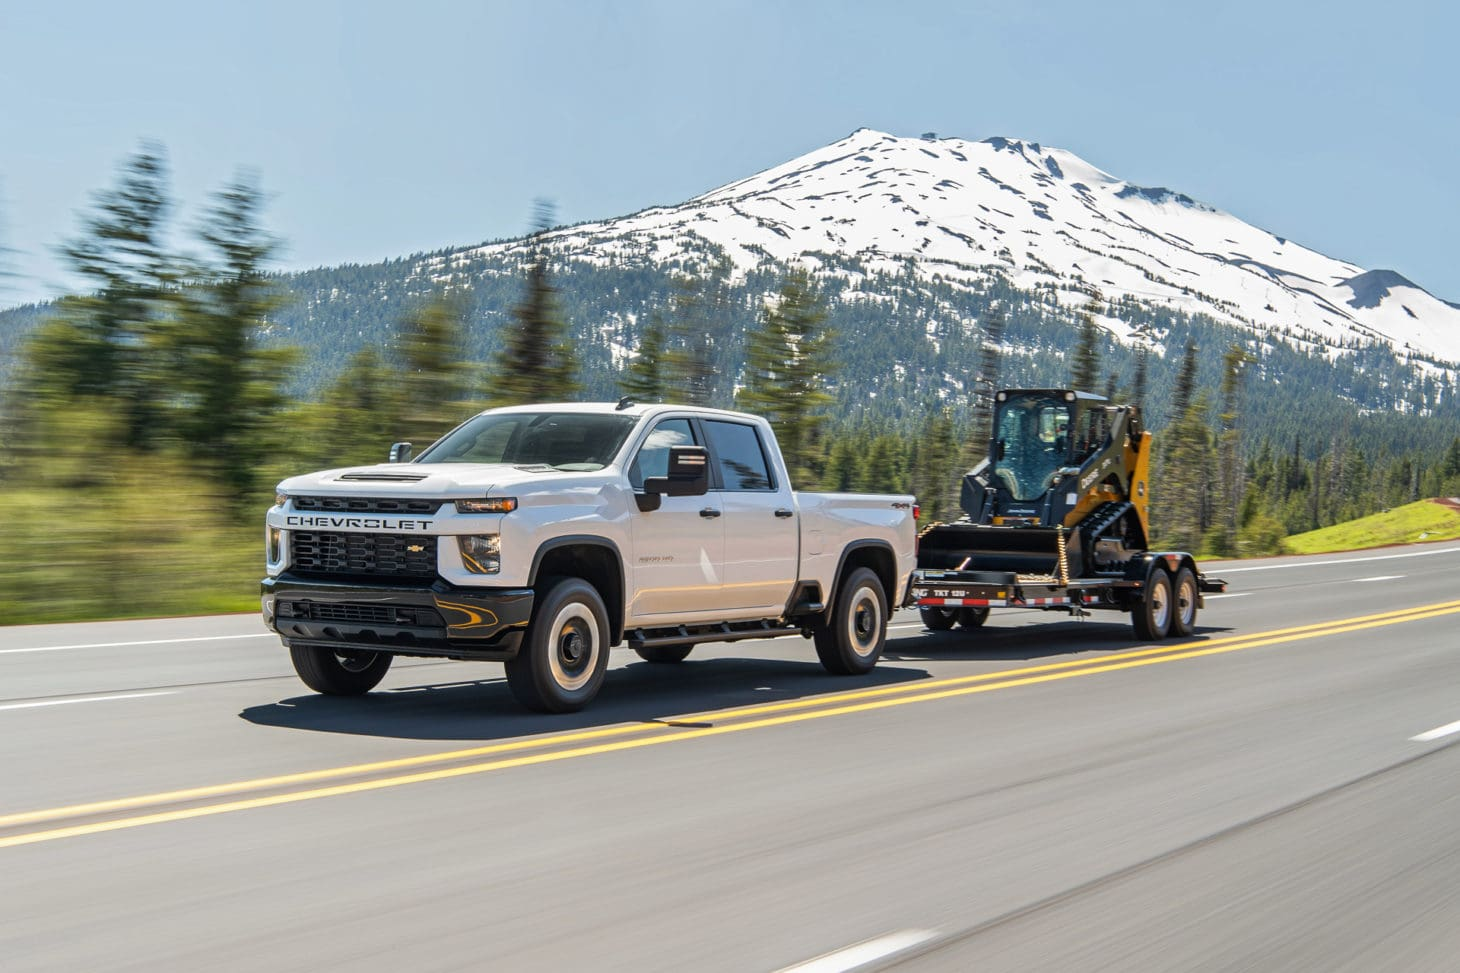 Chevrolet truck towing a construction vehicle